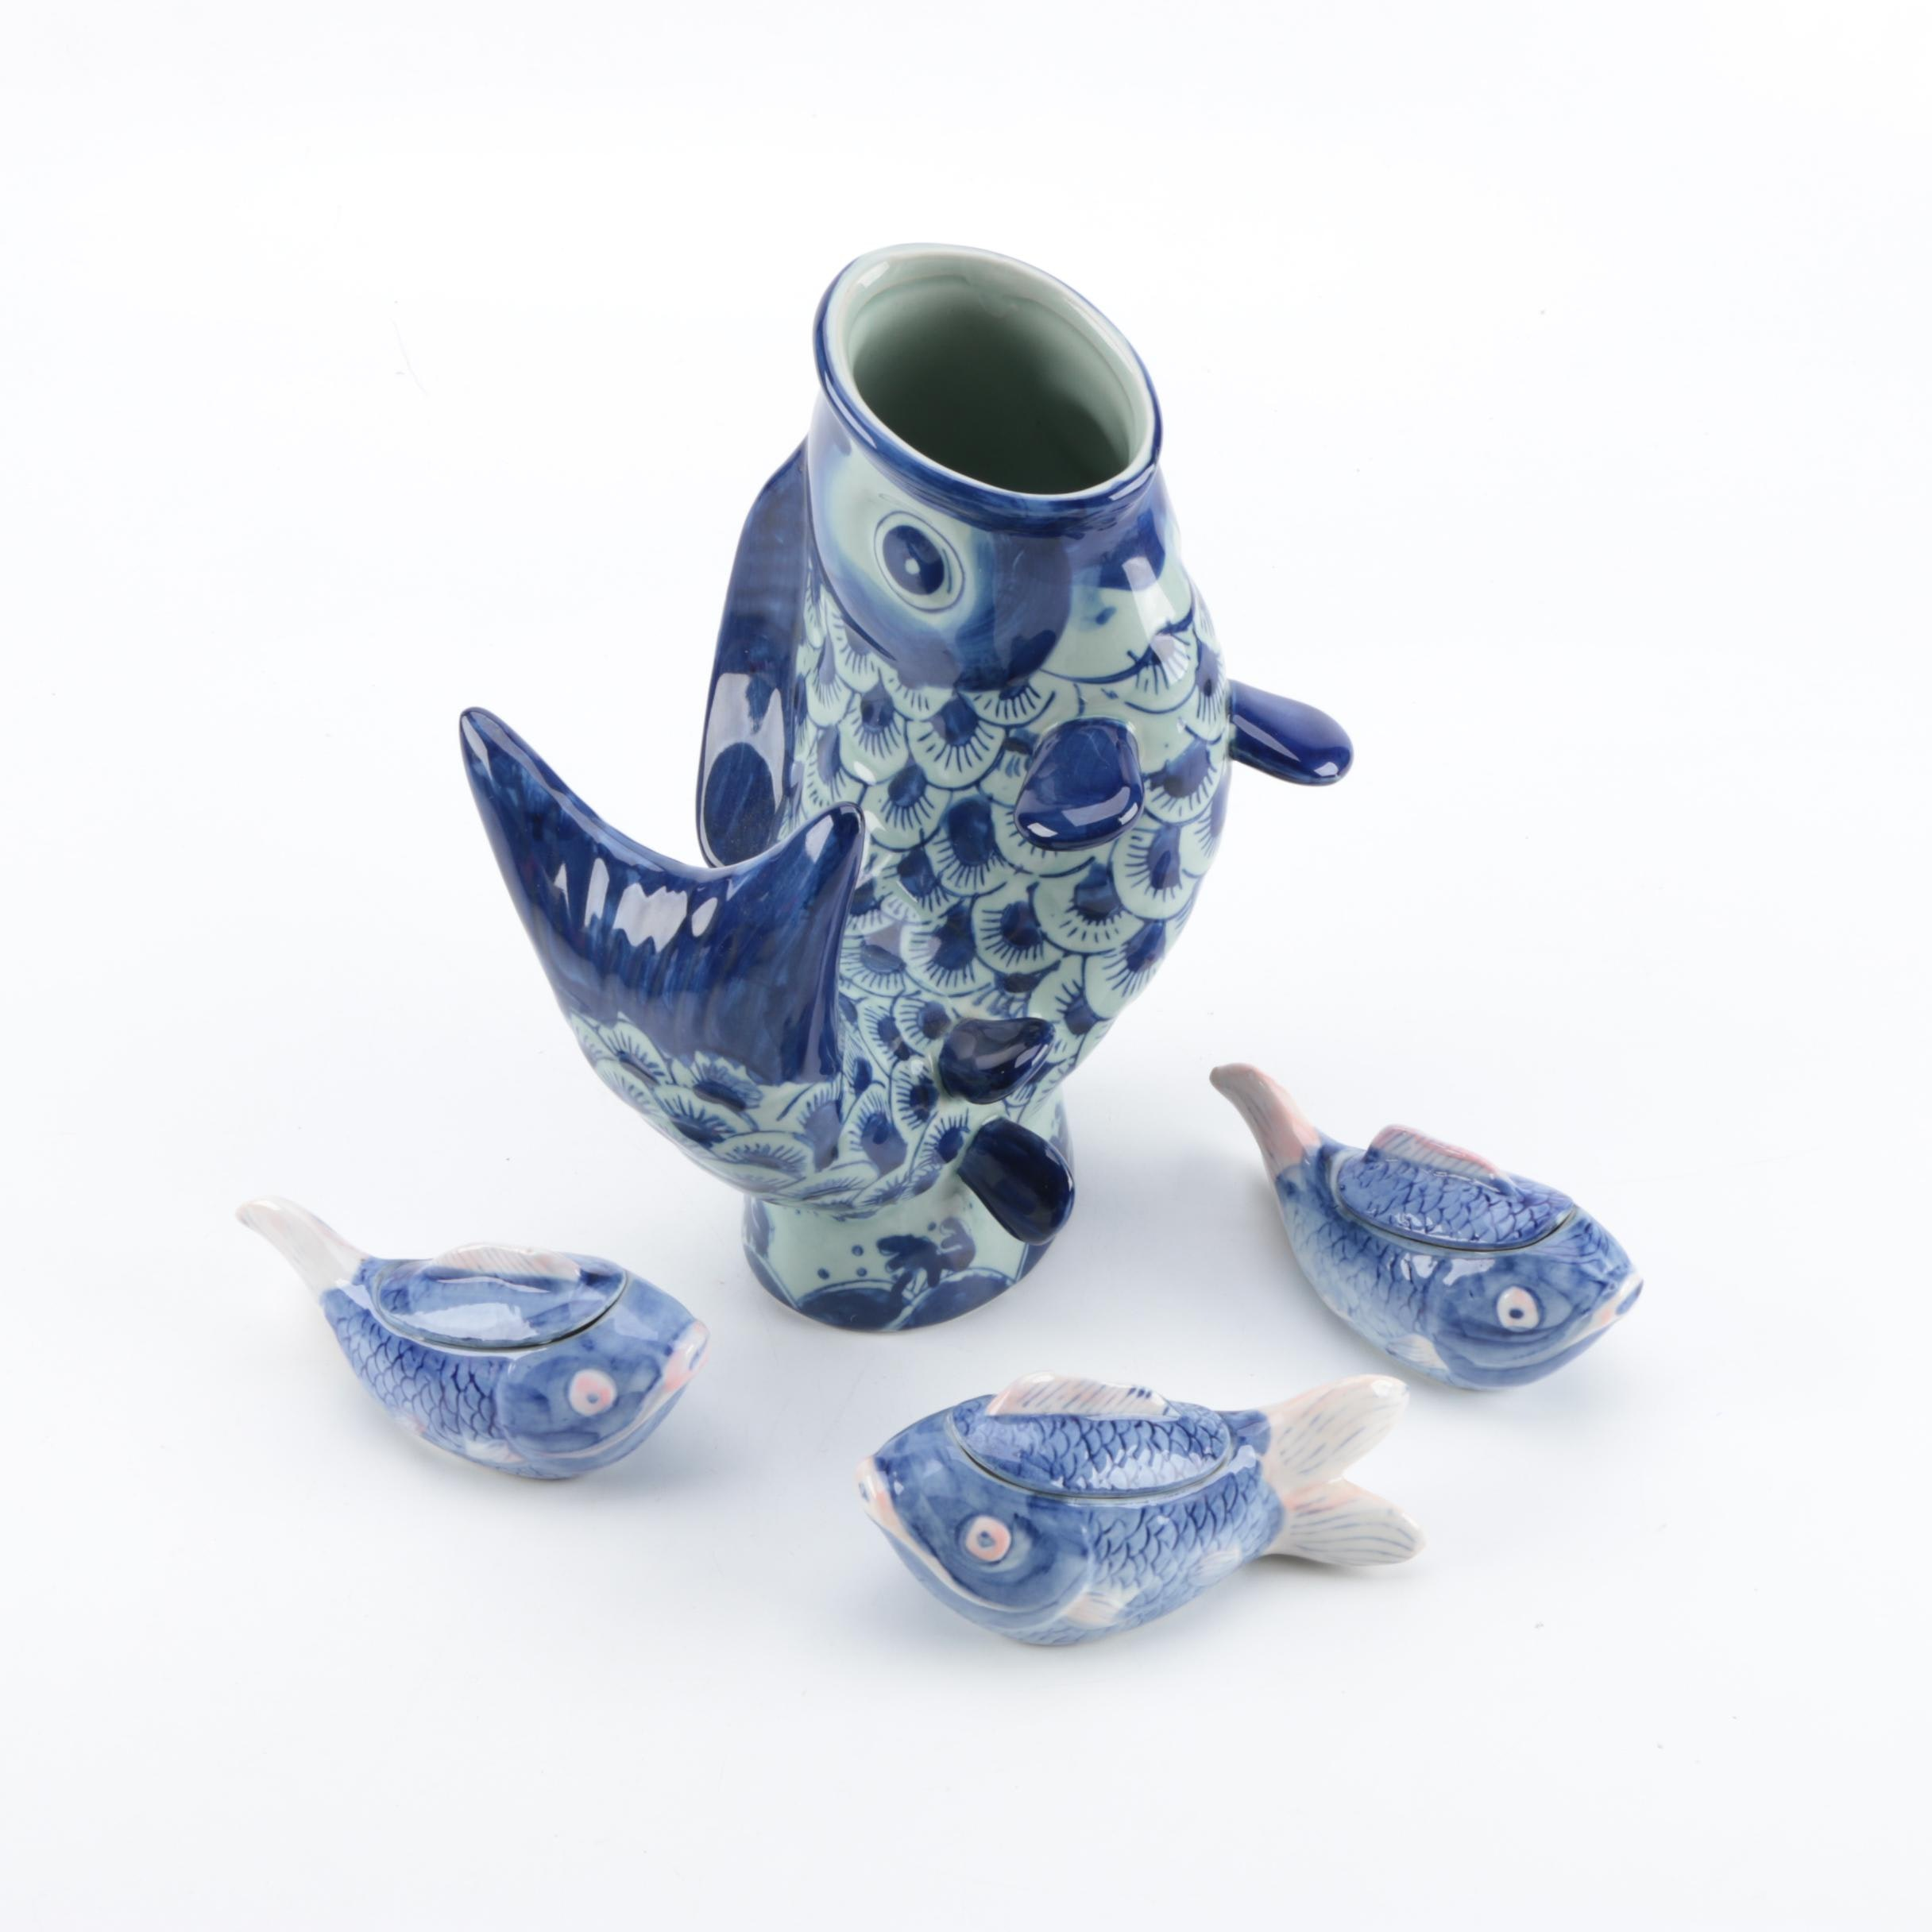 Chinese Blue and White Ceramic Fish Vase with Covered Fish Dishes